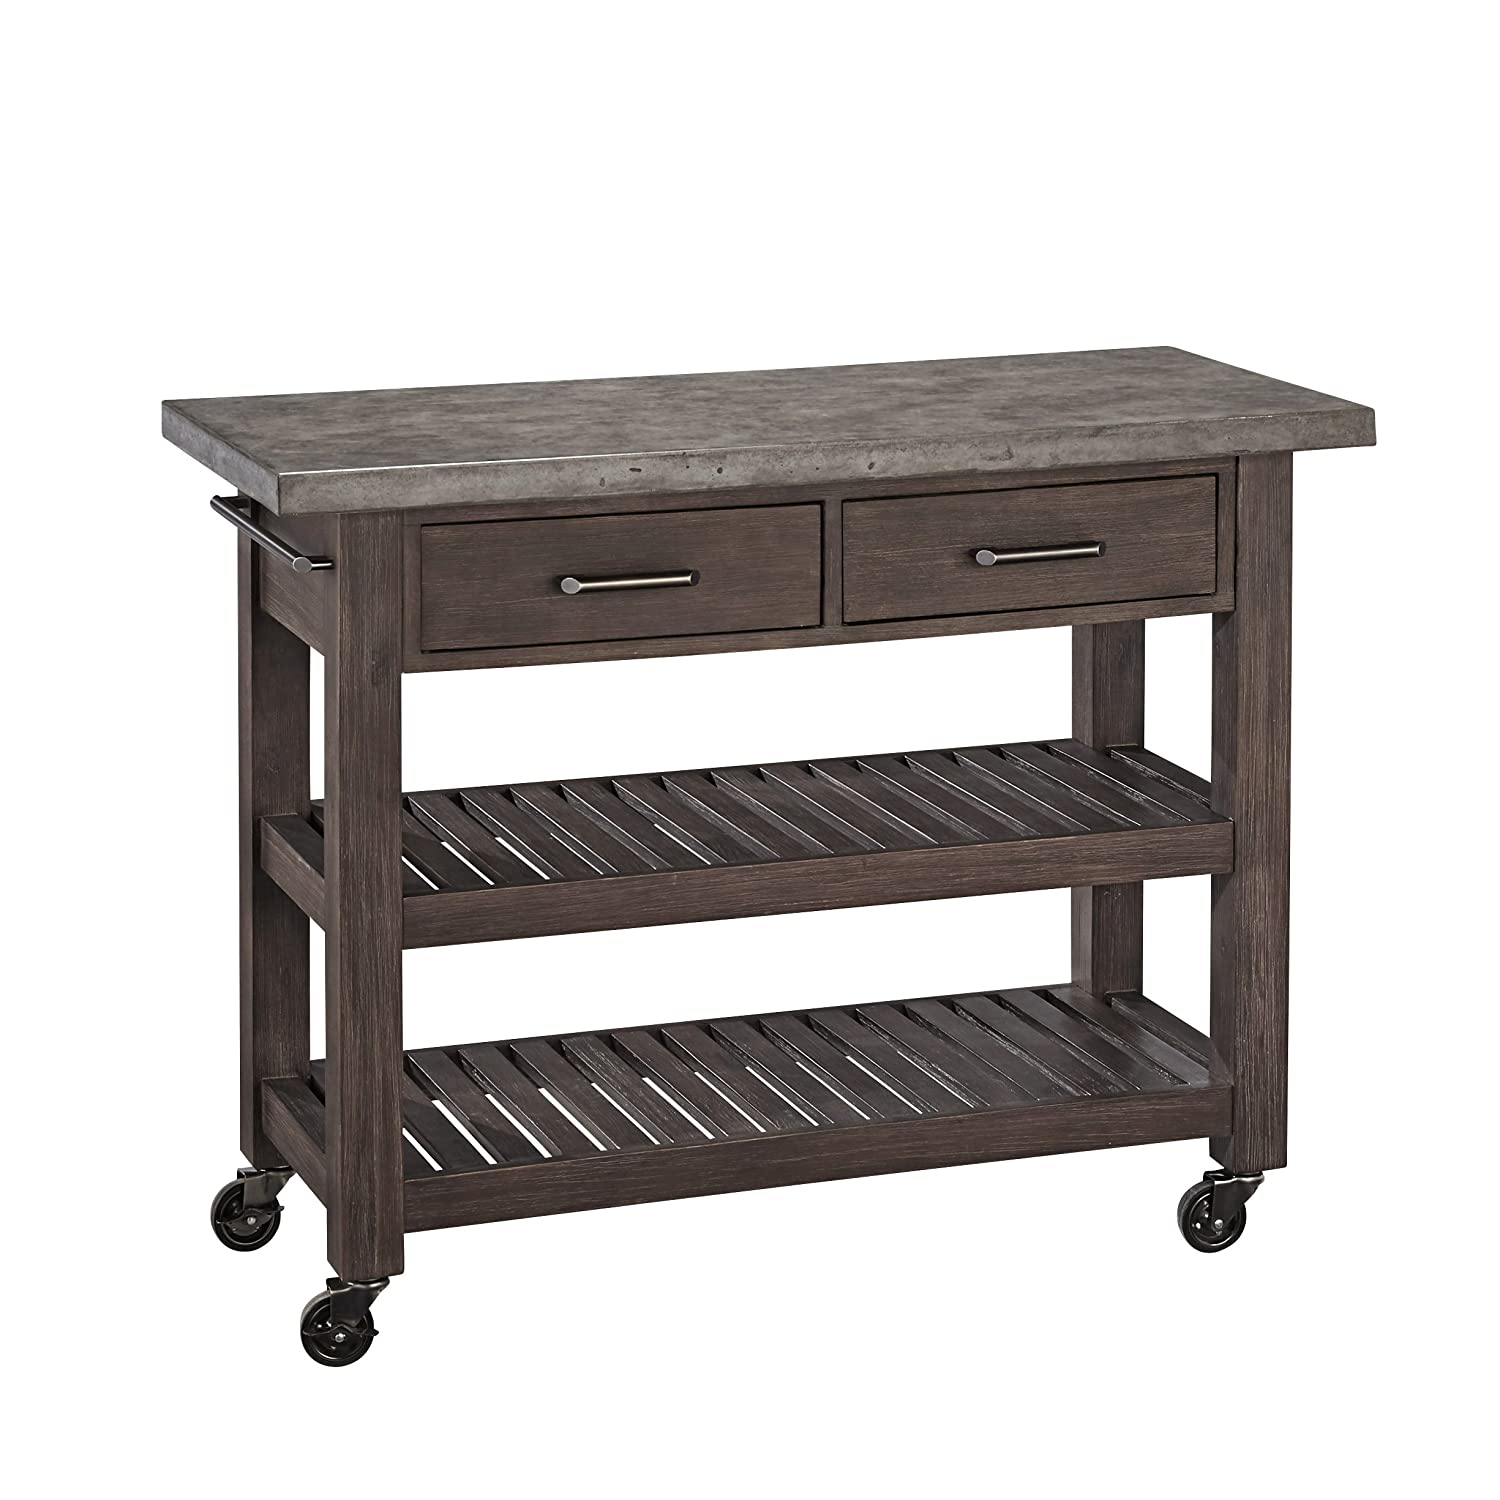 Amazon.com - Home Styles Concrete Chic Kitchen Cart - Kitchen ...